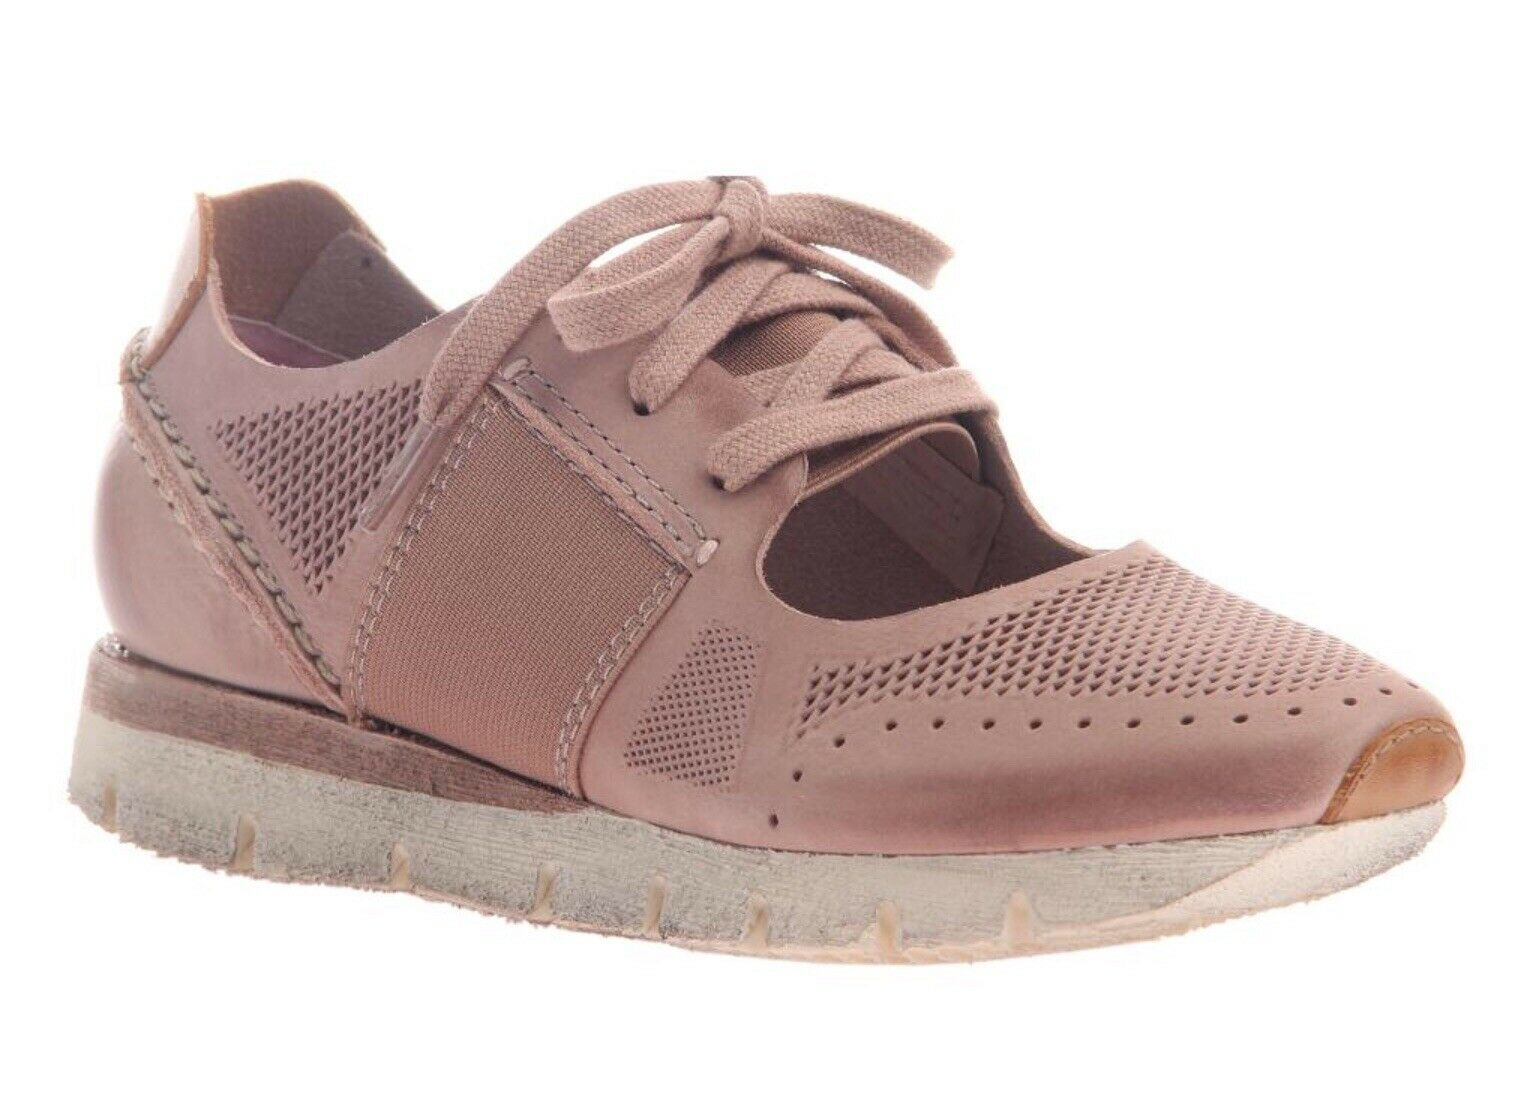 NEW OTBT Star Dust in bluesh Pink Leather Size Women's 8-1 2